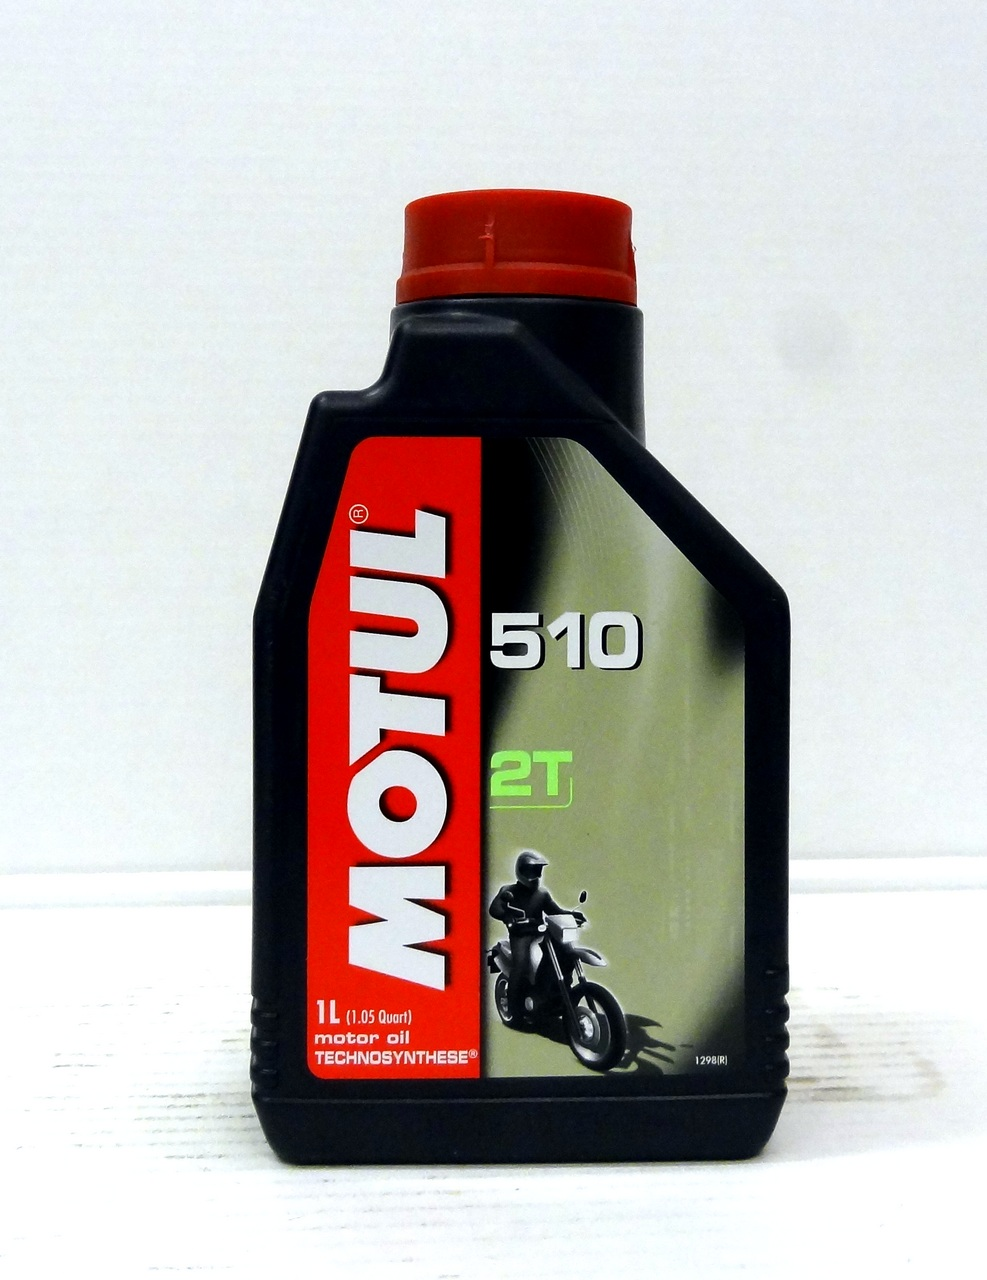 MOTUL 510 2T Technosyntese 1L